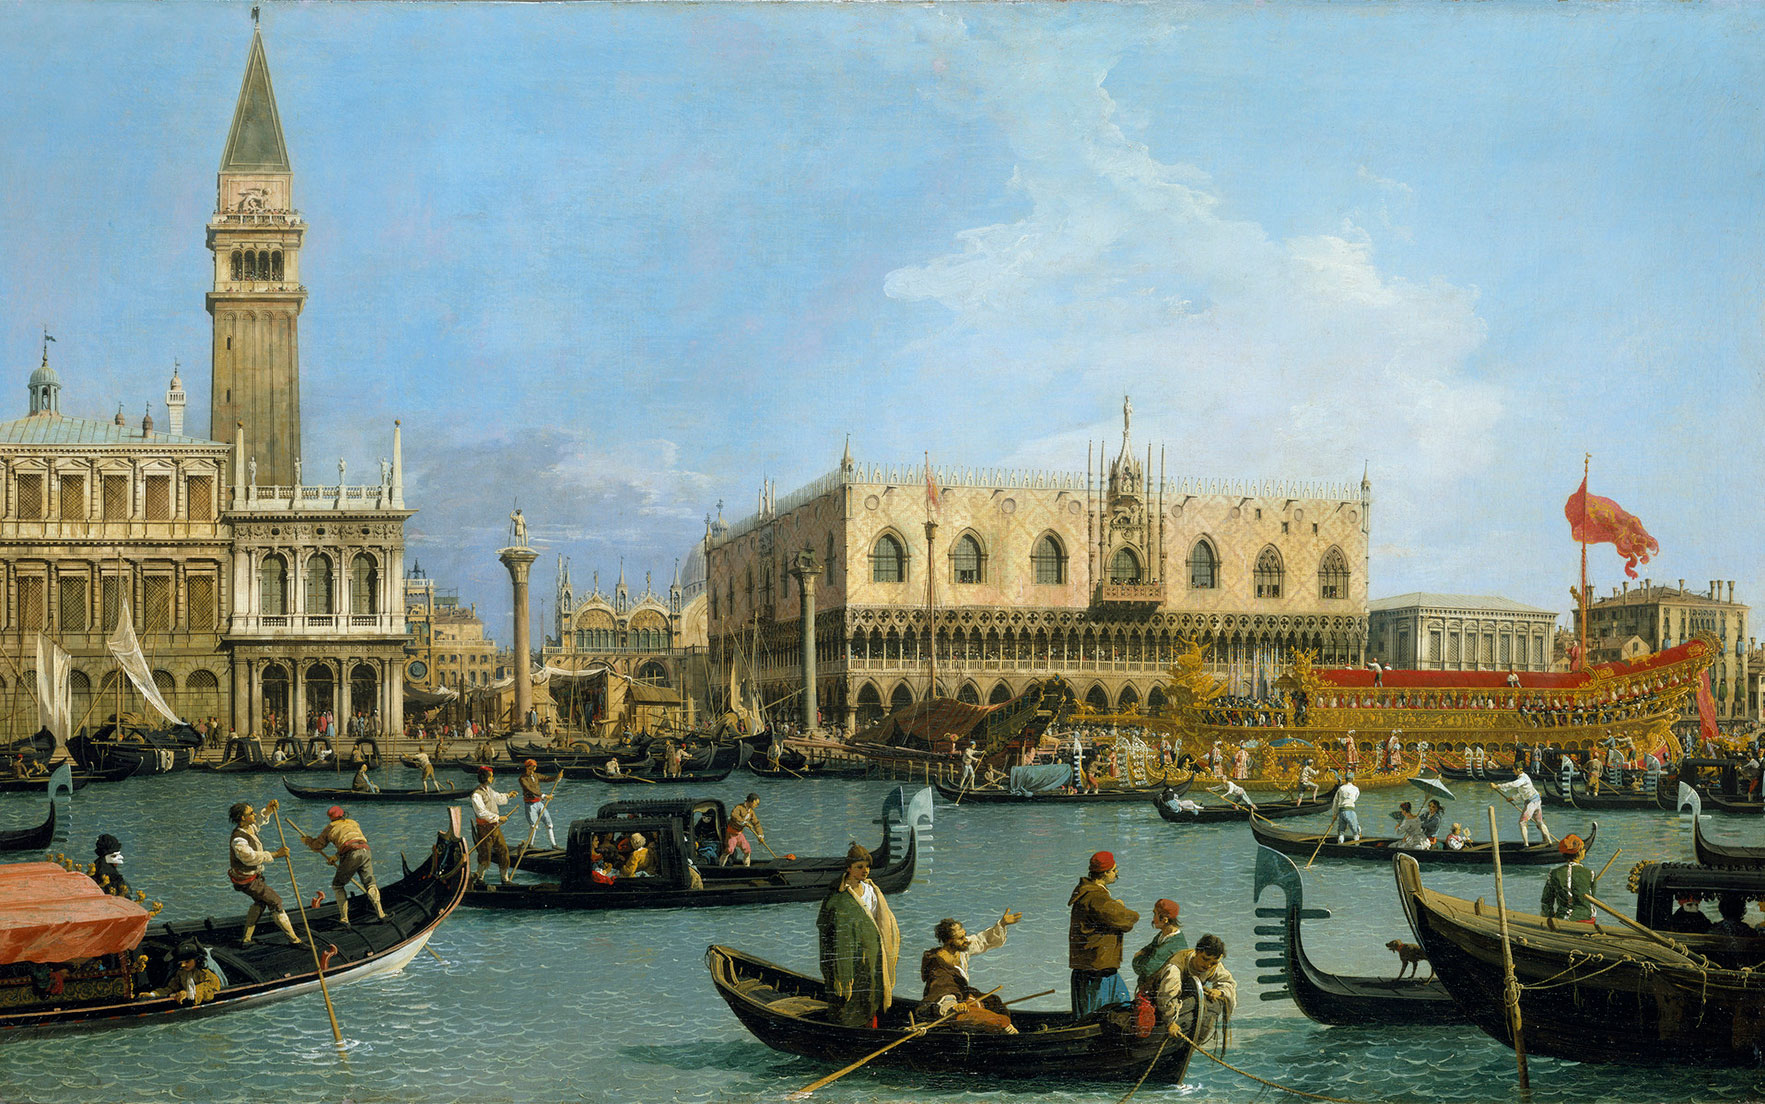 Canaletto and the Art of Venic